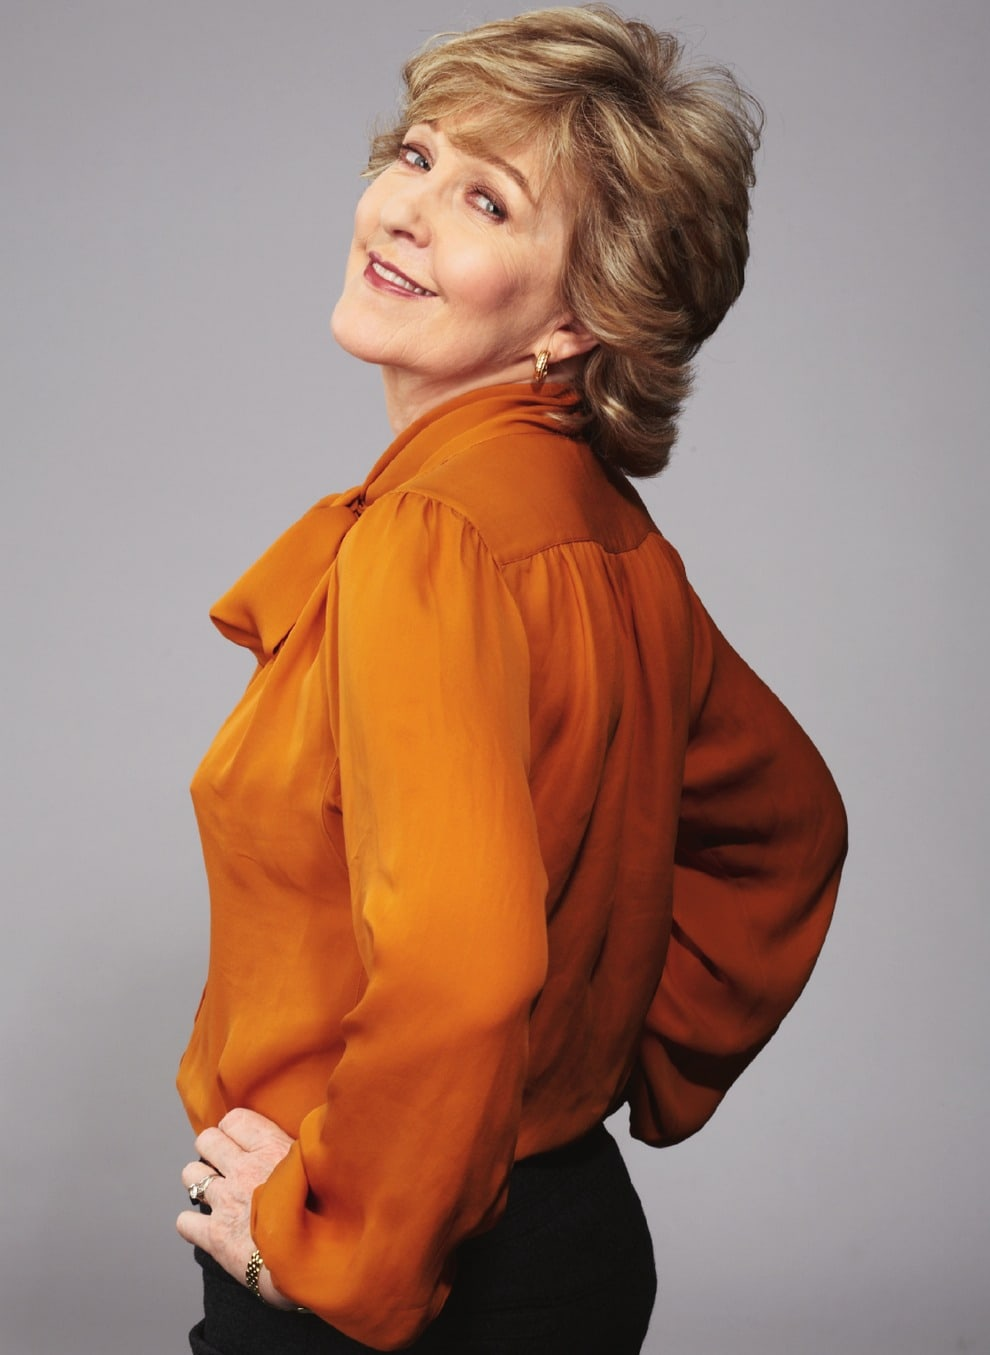 patricia hodge images